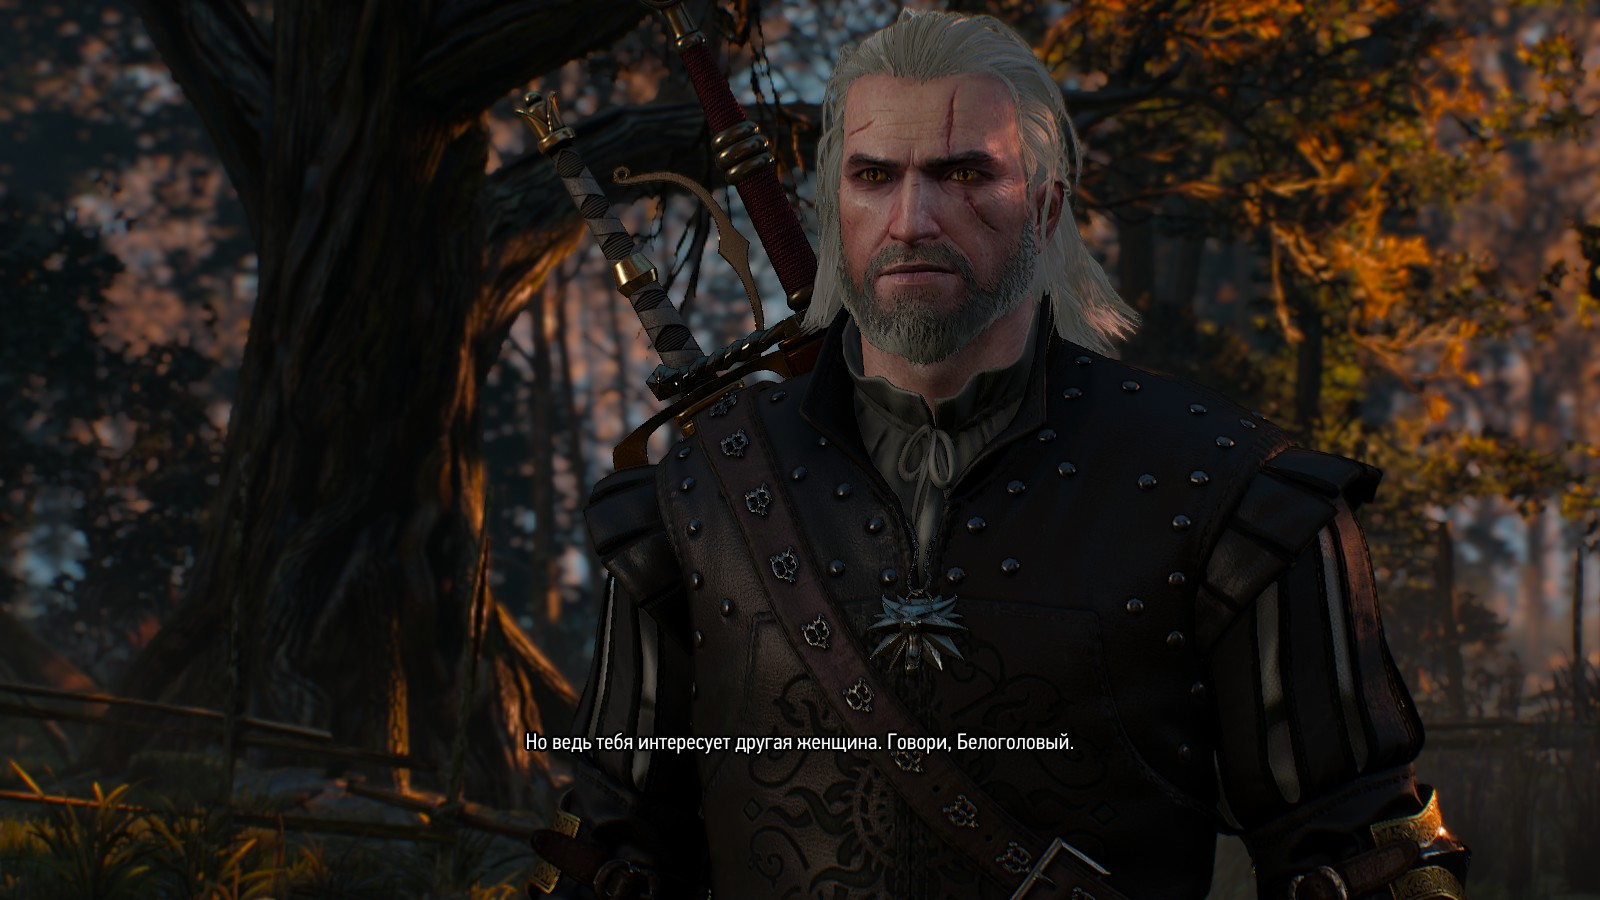 20170731201648_1.jpg - Witcher 3: Wild Hunt, the